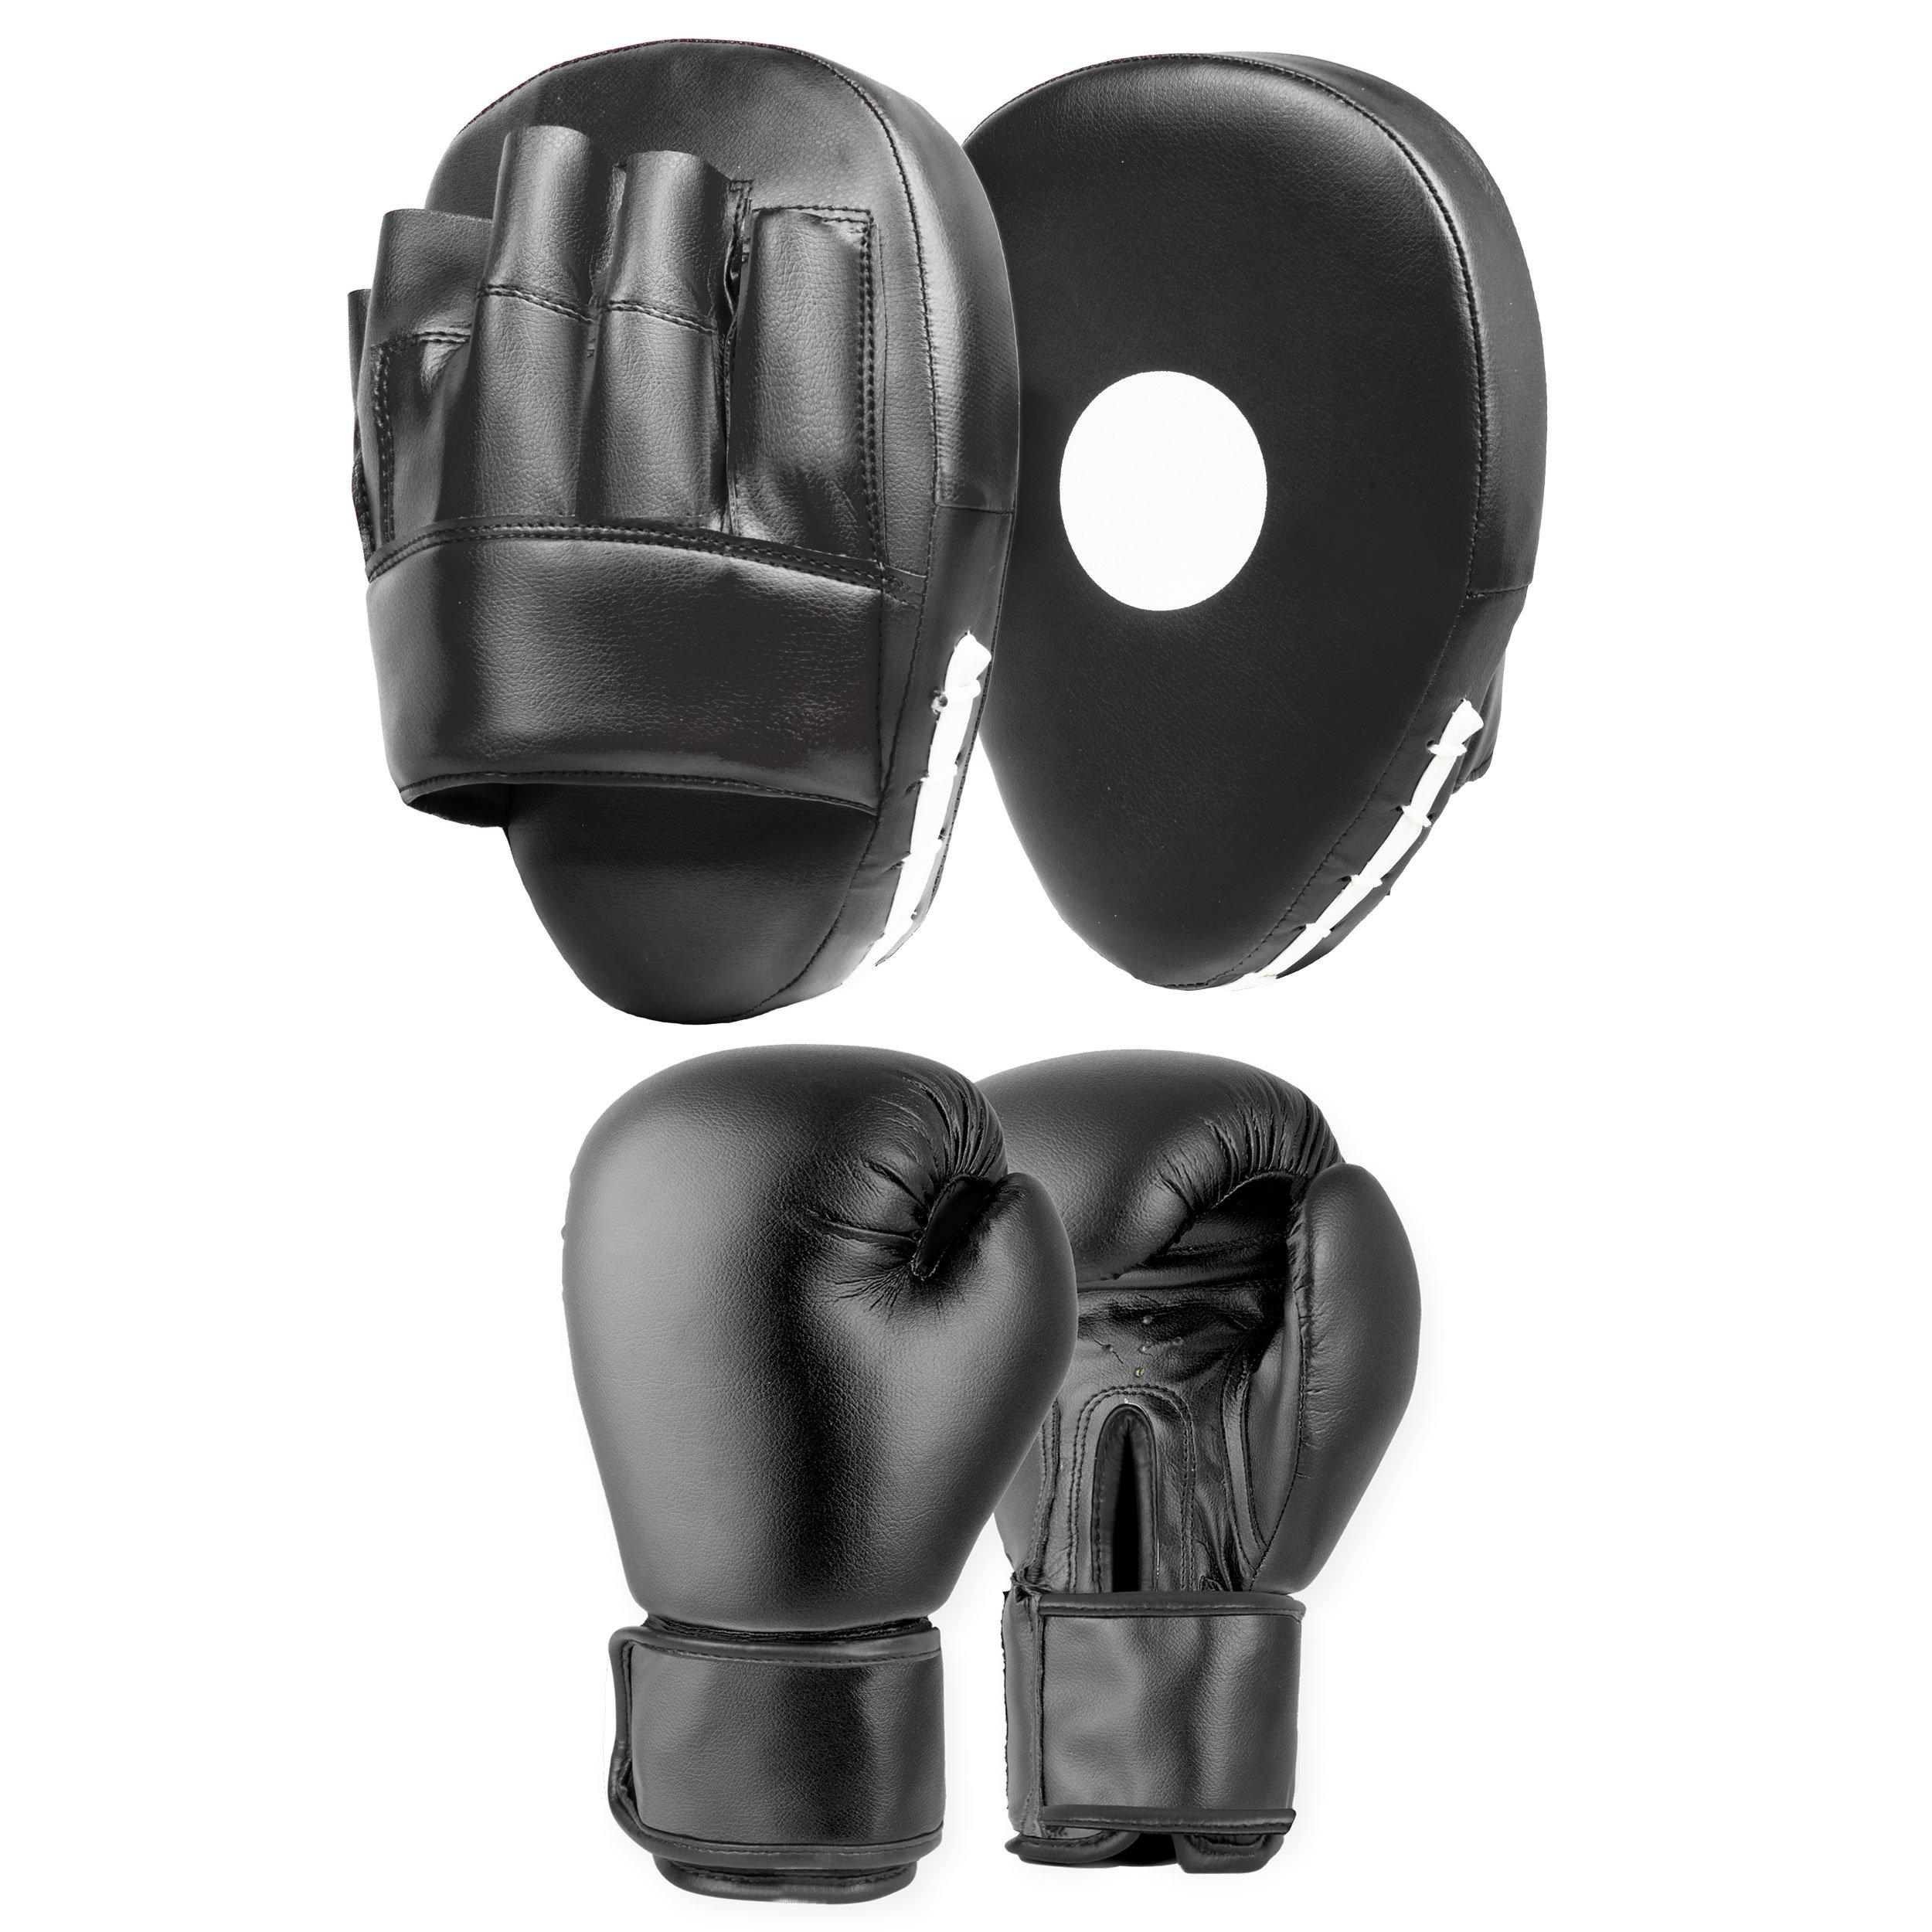 Lions/® Curved Focus Pads and Gloves Hand Wraps Set Hook /& Jabs Punch Bag Mitts Boxing MMA Kick Training